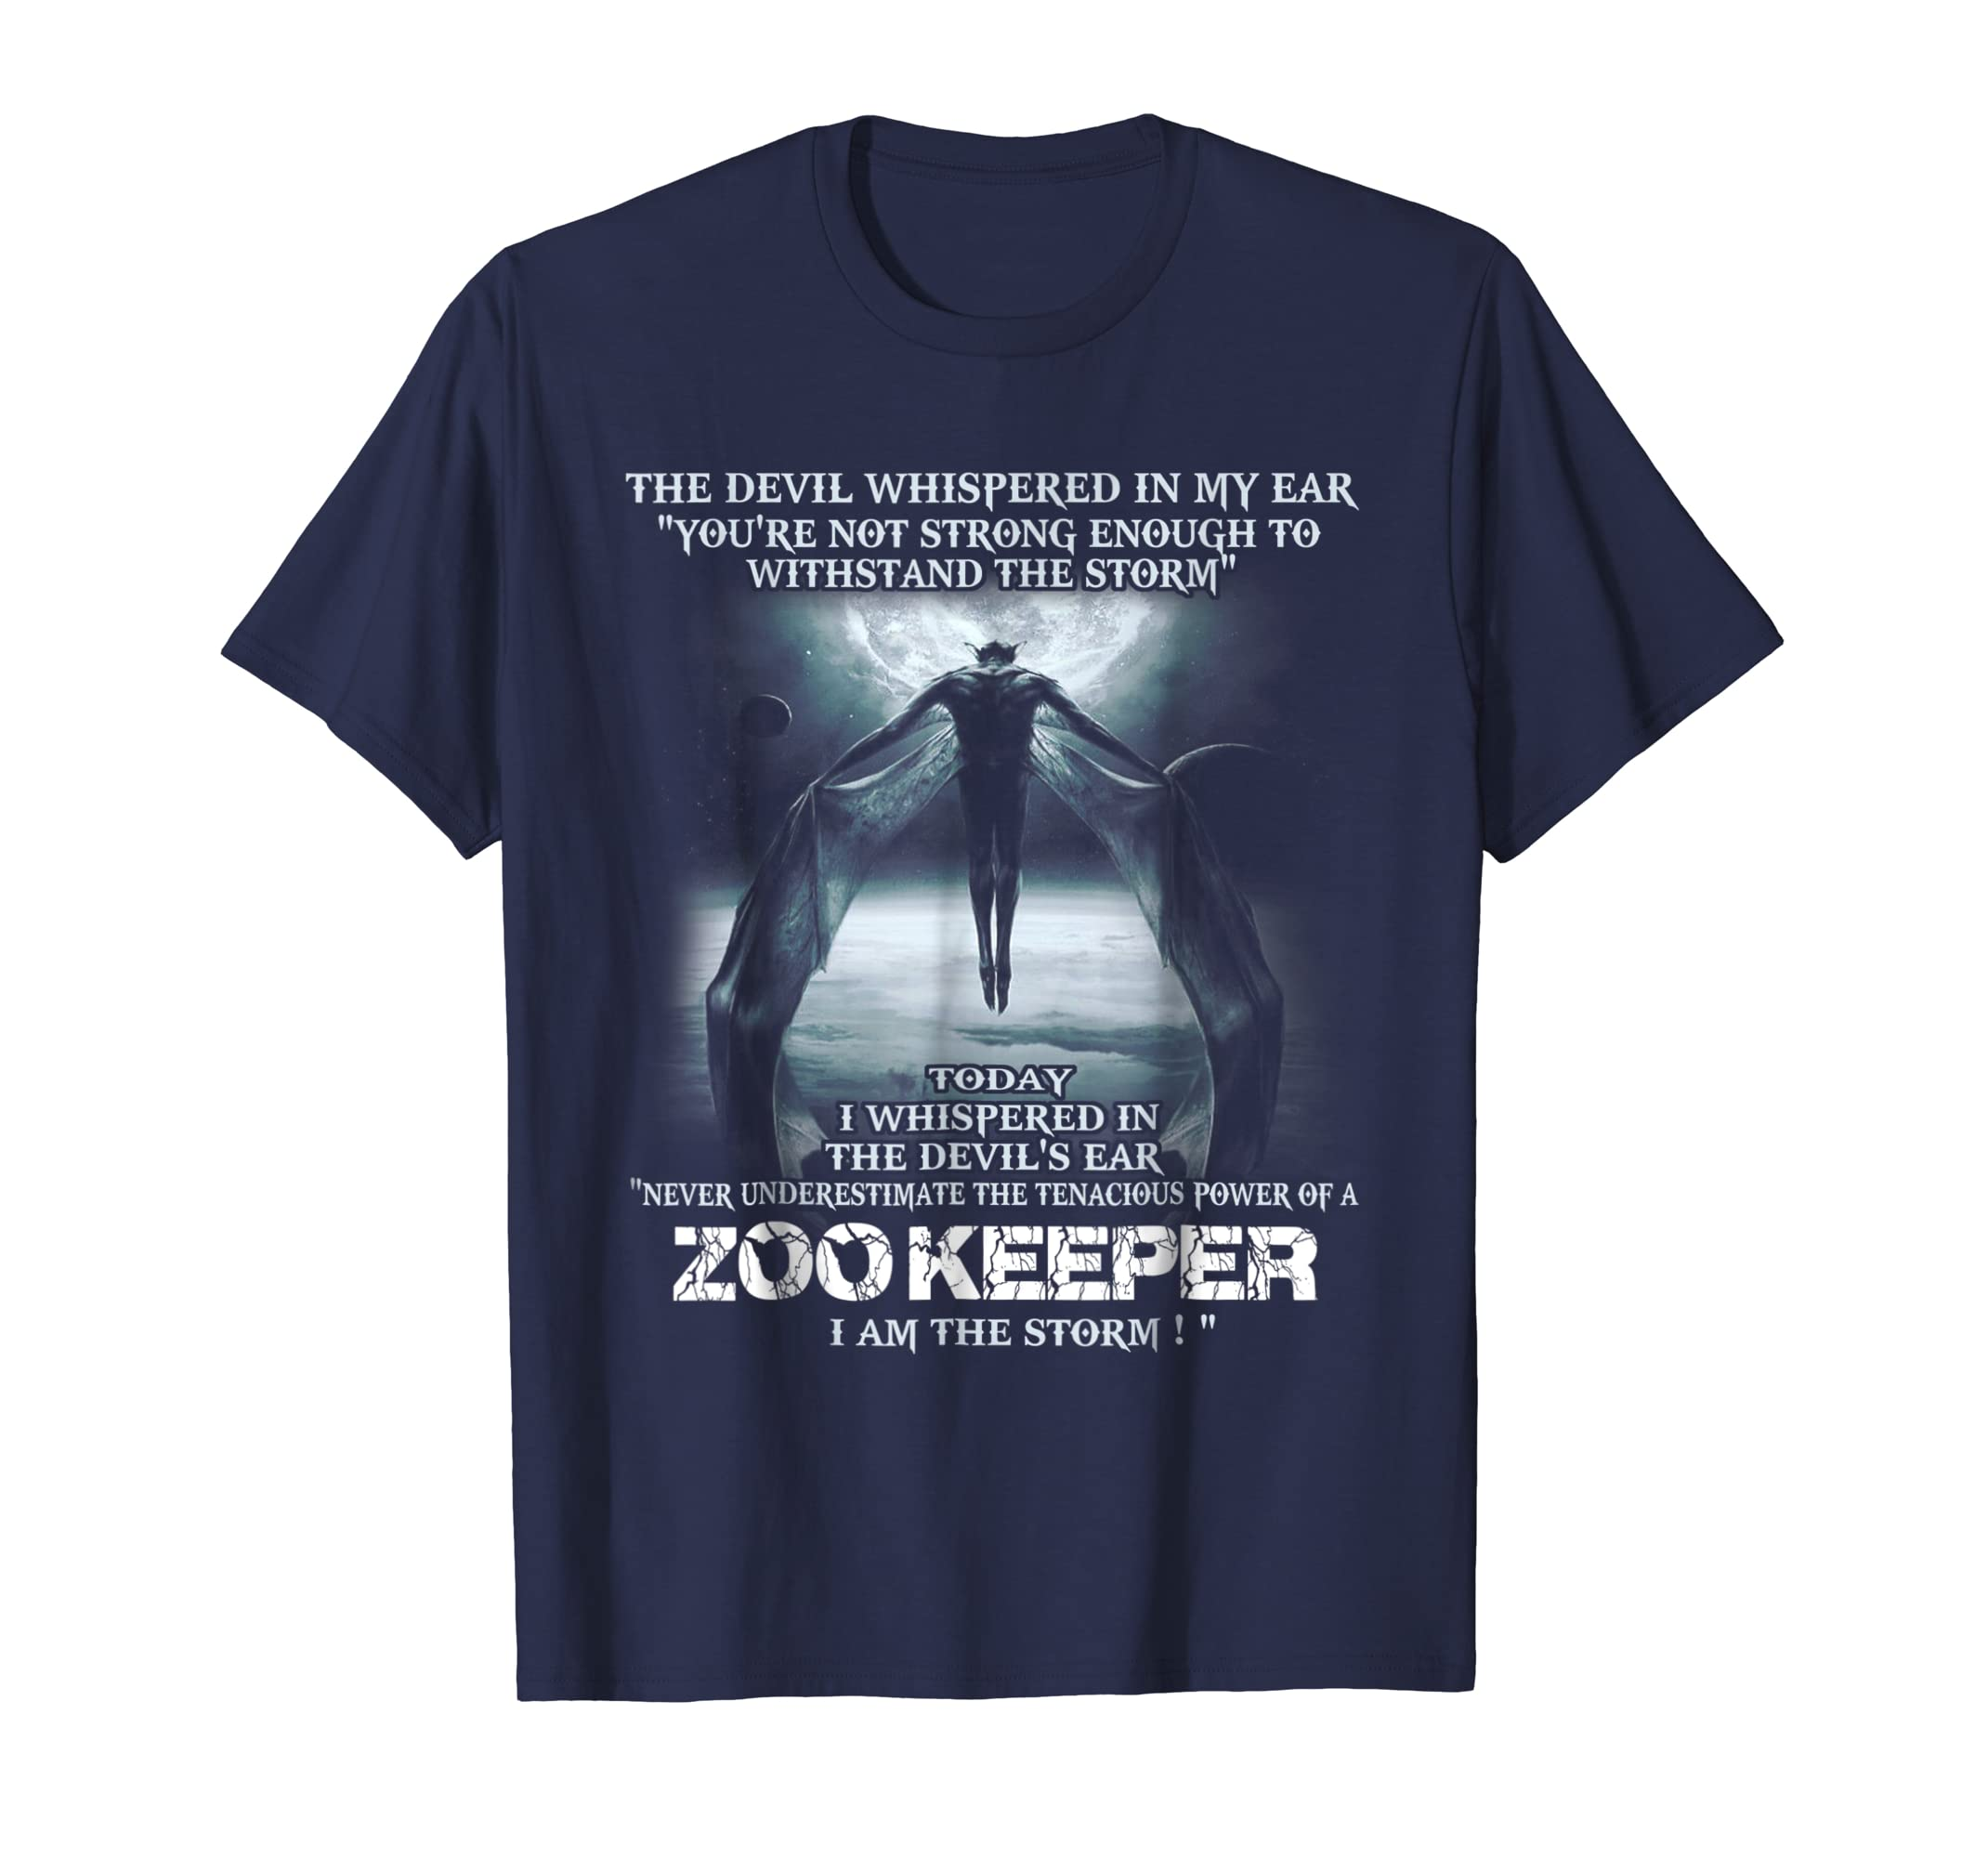 The Devil whispered in my ear - ZOO KEEPER - T-shirt gift-ln